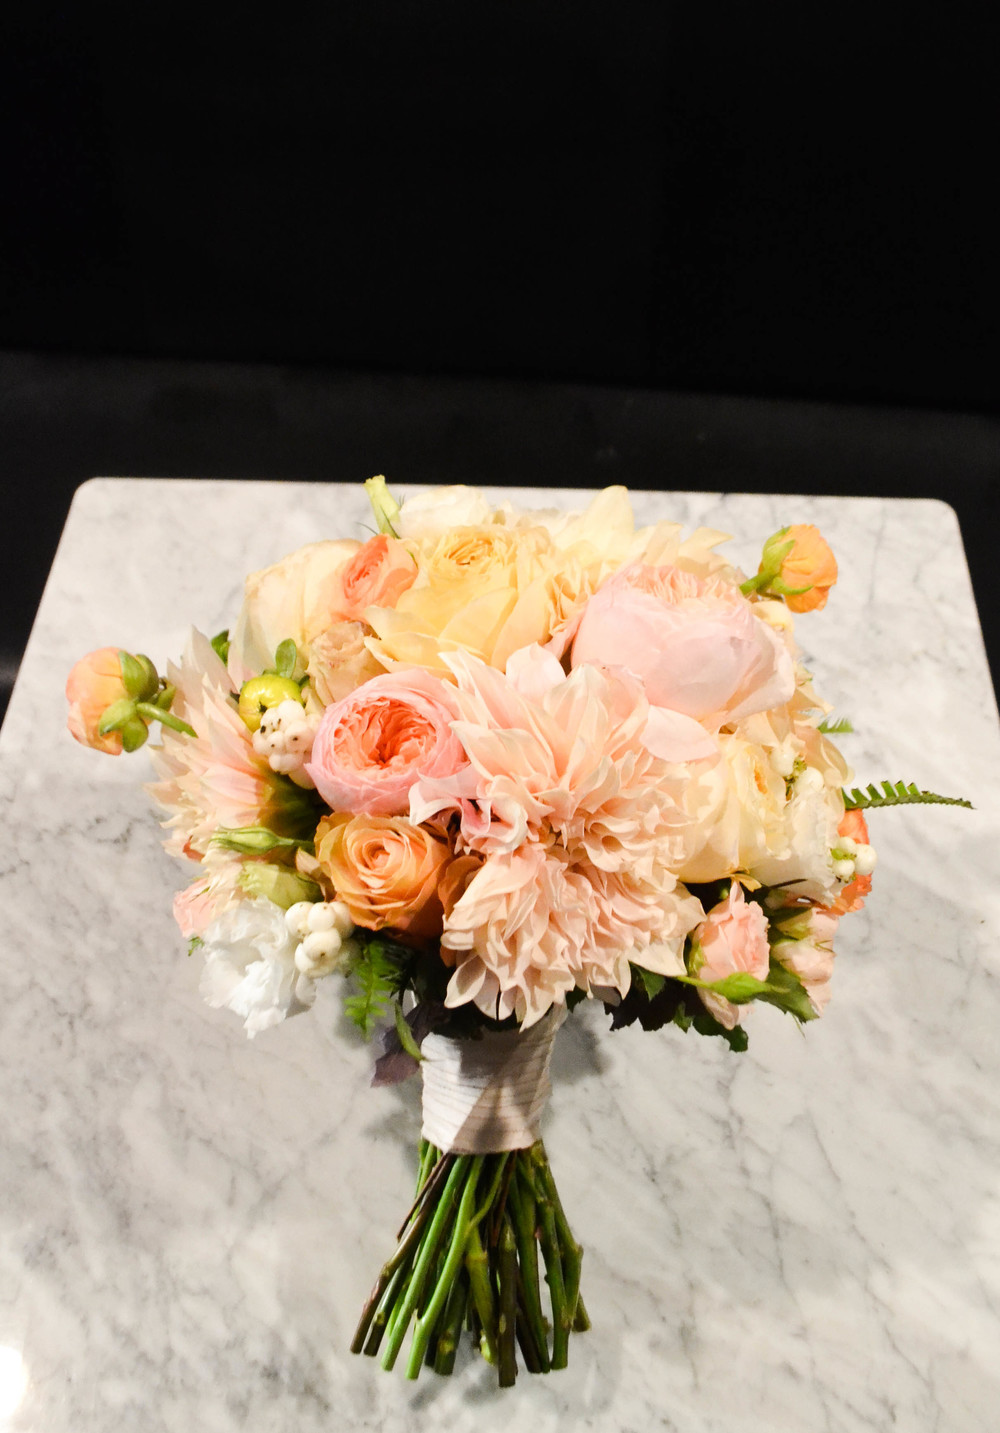 Bridal bouquet including cafe au lait dahlias, garden roses, sahara rose, spray rose and ranunkulous. Lush round classic bouquet with faded fall colors. Gramercy Park Hotel Terrace Wedding. Rosehip Social Floral Design.